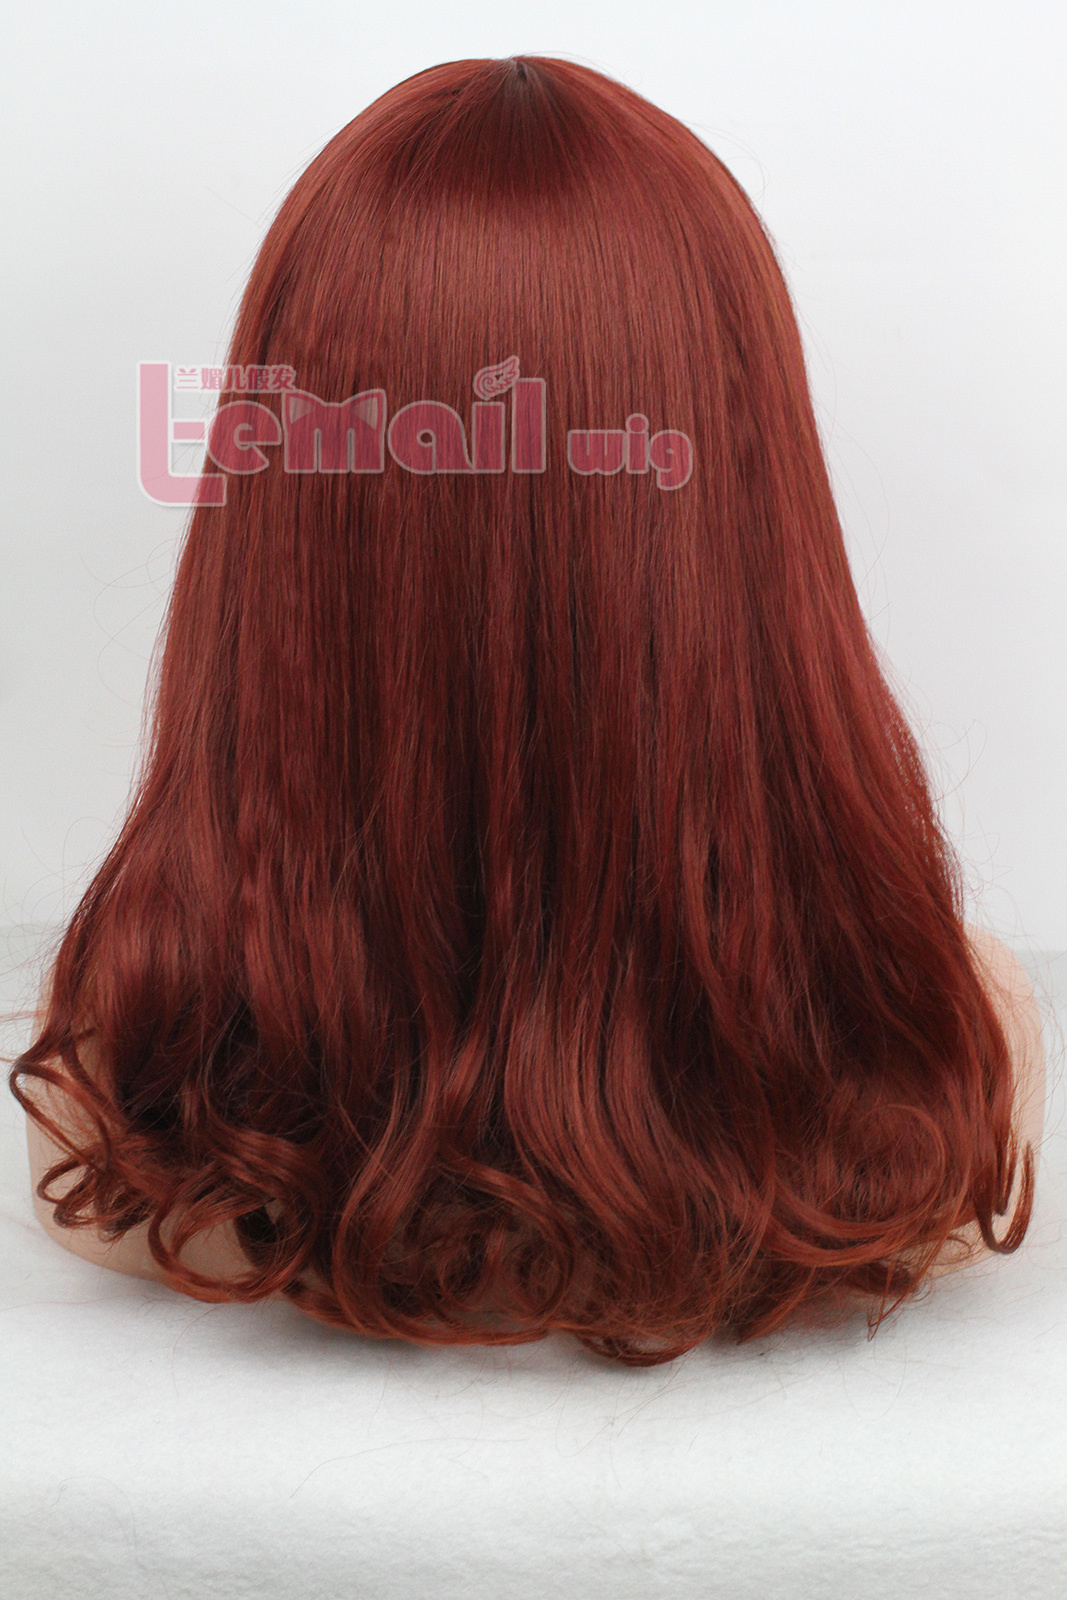 45cm Medium Large brown red Fashion Small roll women wig